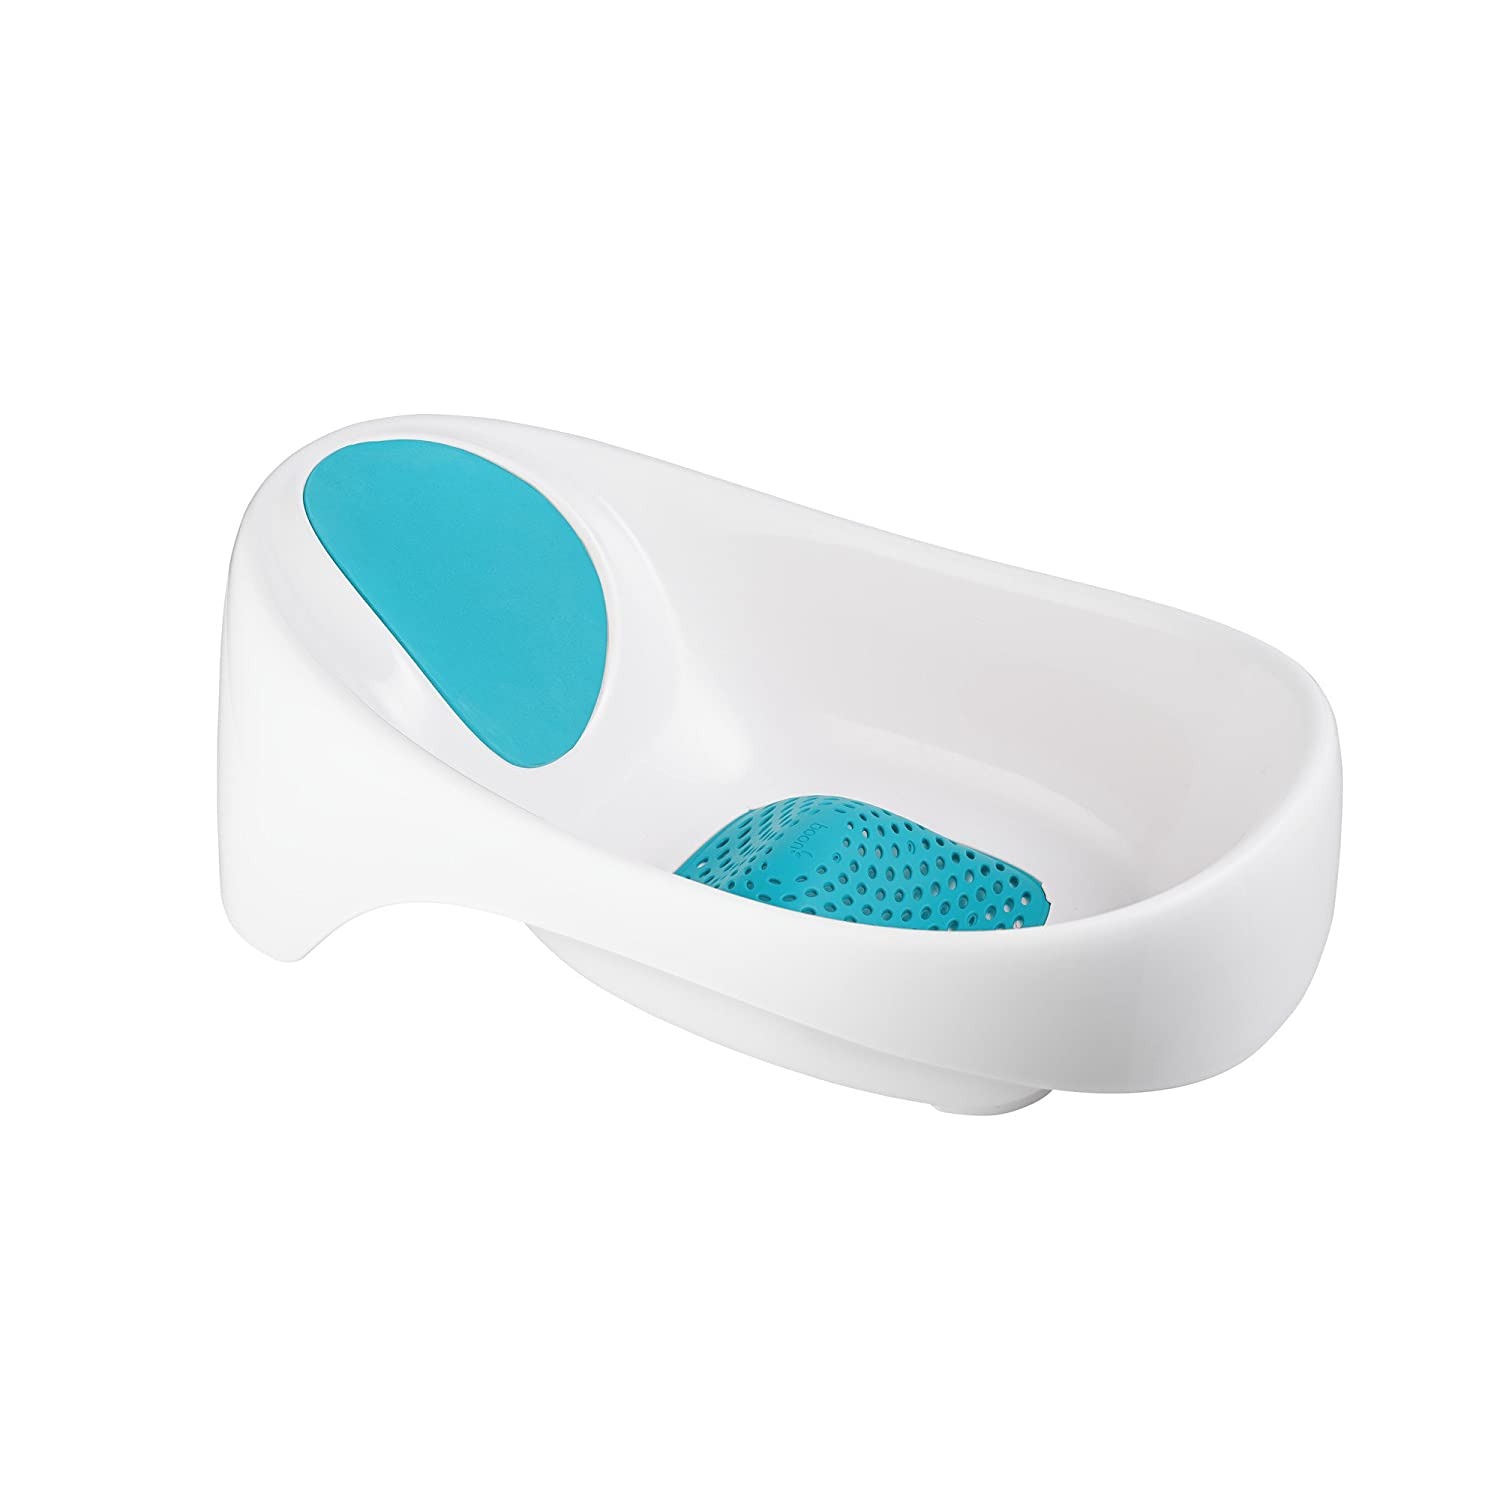 Amazon.com: Bathing Tubs & Seats: Baby Products